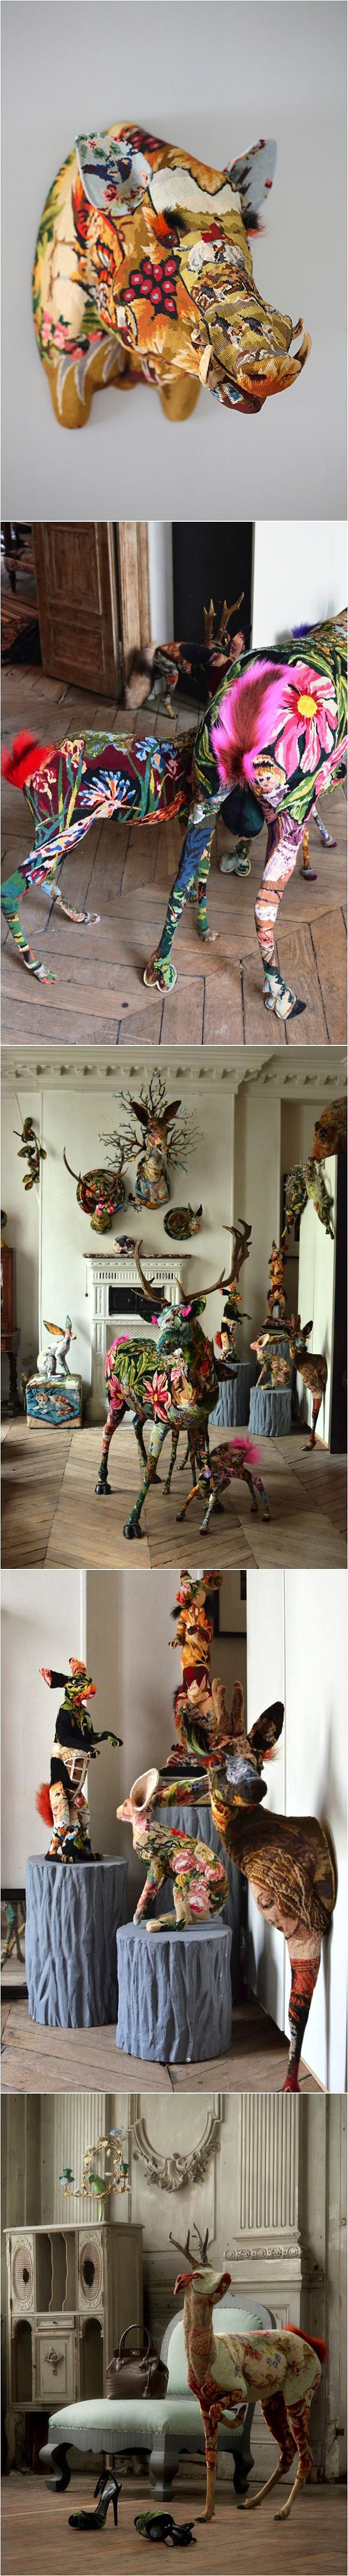 tapestry-taxidermy-Love | Artists We Love | Pinterest | Taxidermy, Art and Decoupage